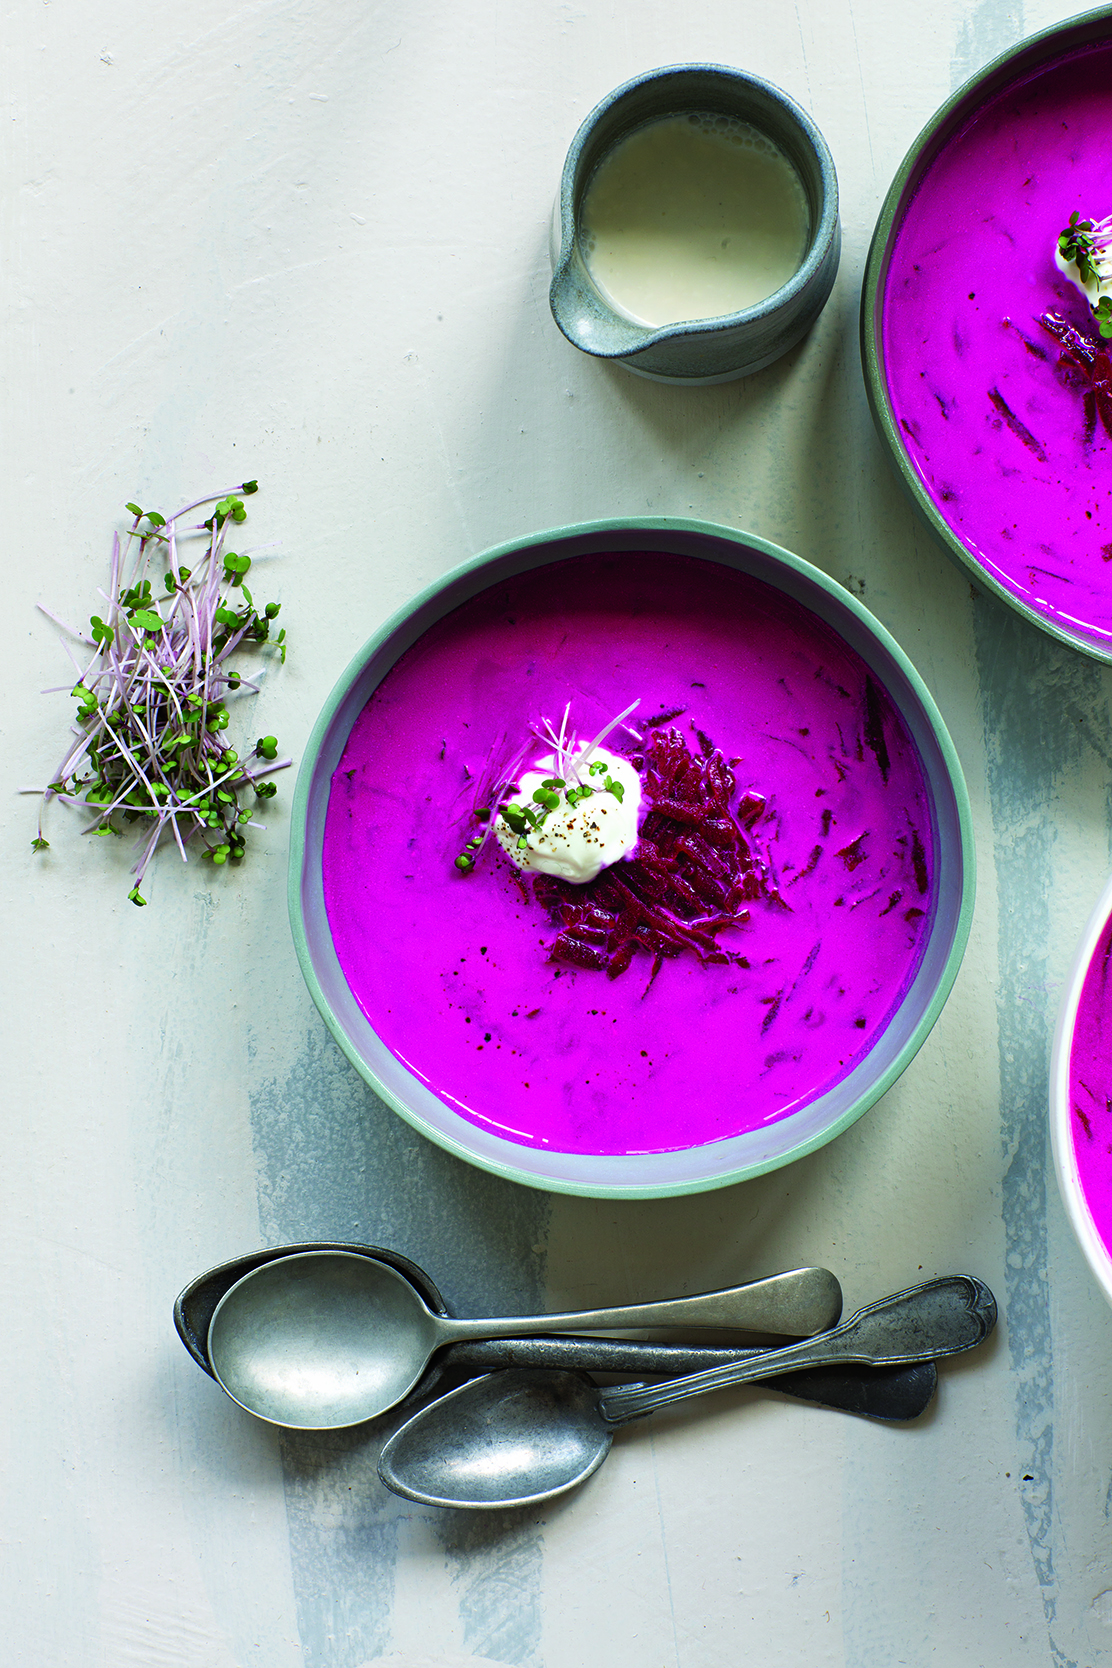 Robyn Lea, Brightest Borscht with Sour Cream & Fresh Dill, Props styling: Bec Cole, Food styling: Deb Kaloper